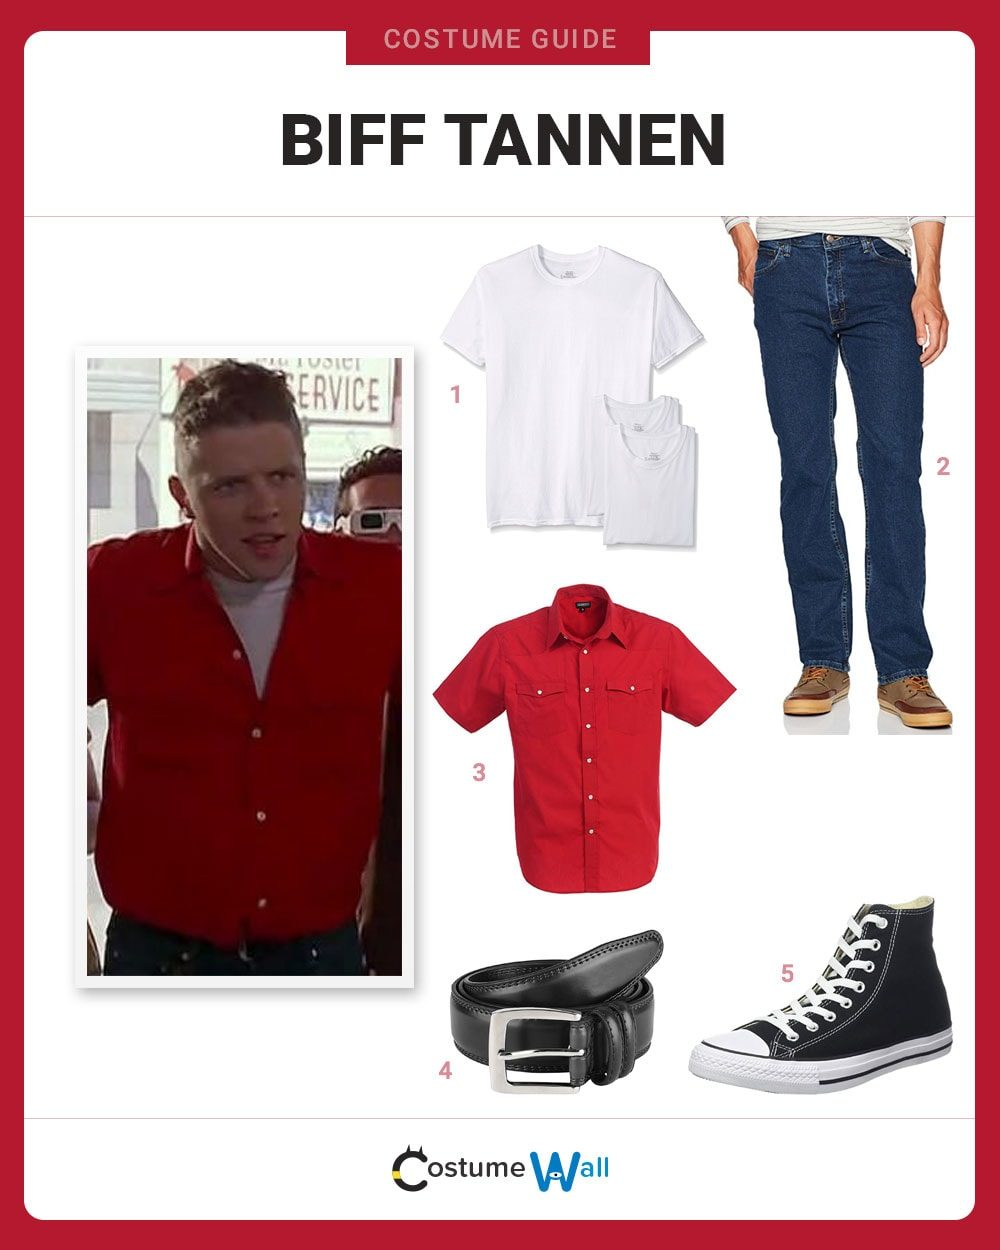 Biff Tannen Costume Guide